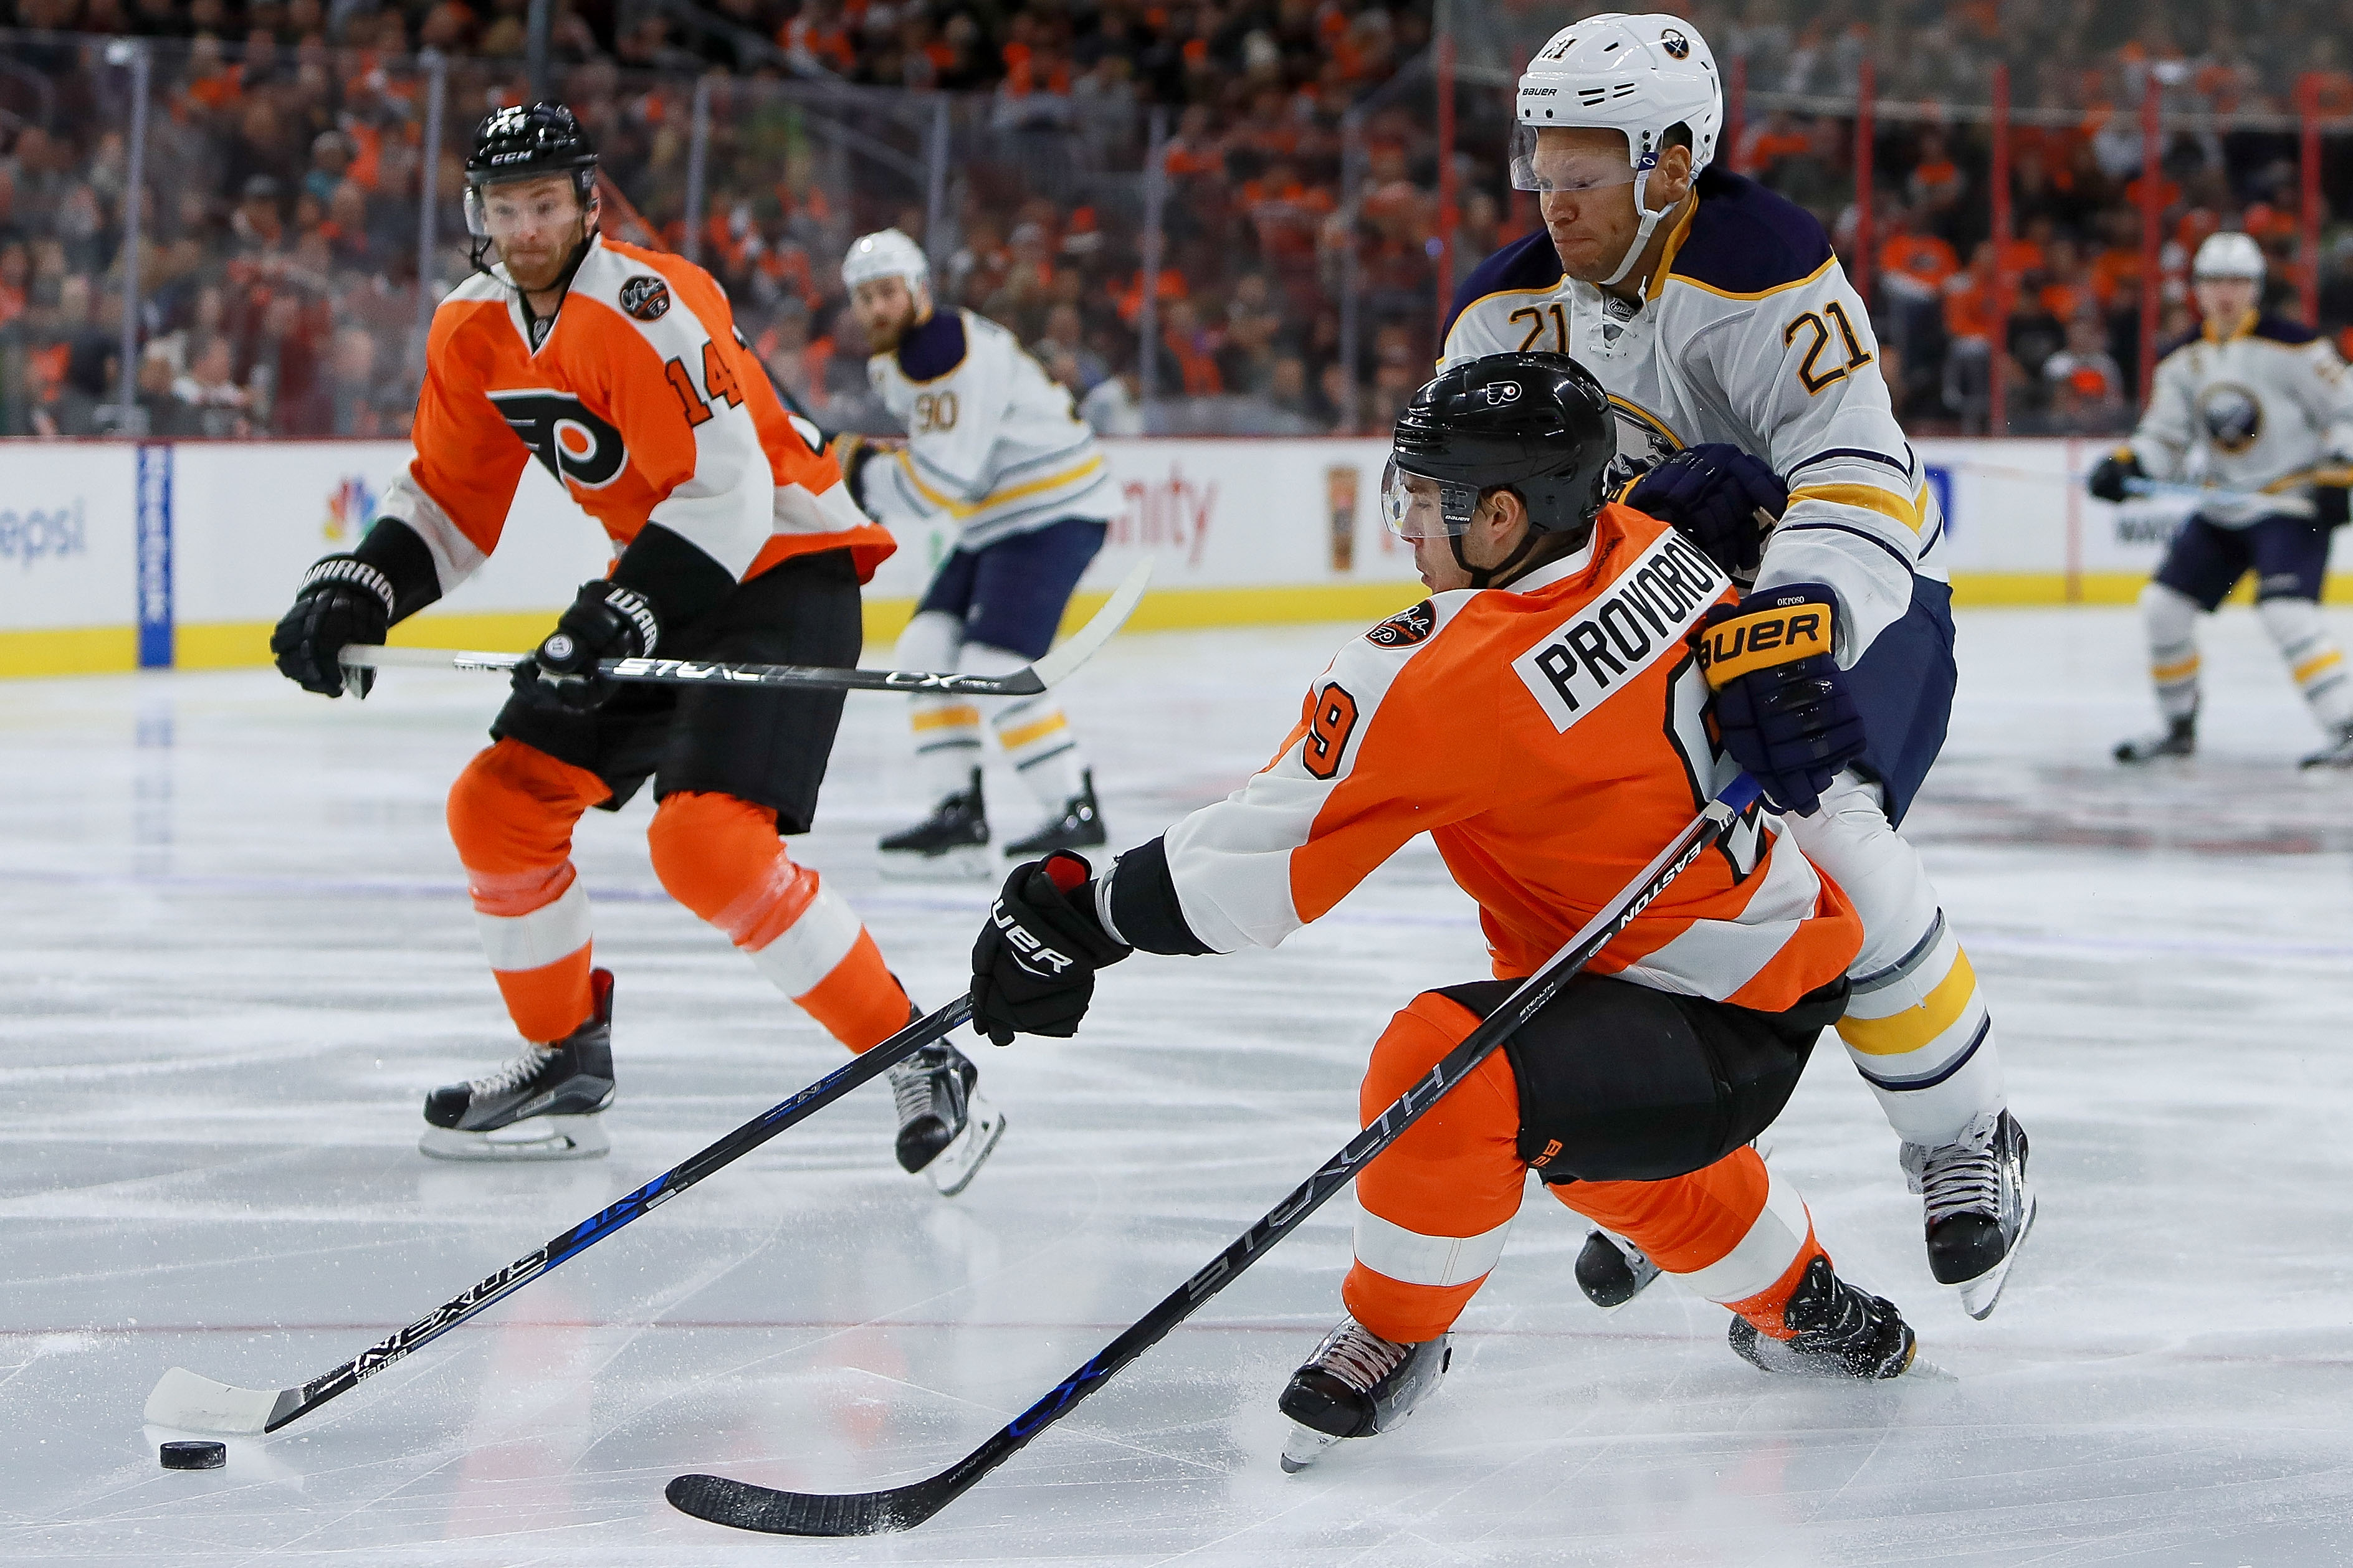 The Sabres are hoping to learn the lessons from a third-period collapse in Philadelphia.  (Photo by Michael Reaves/Getty Images)